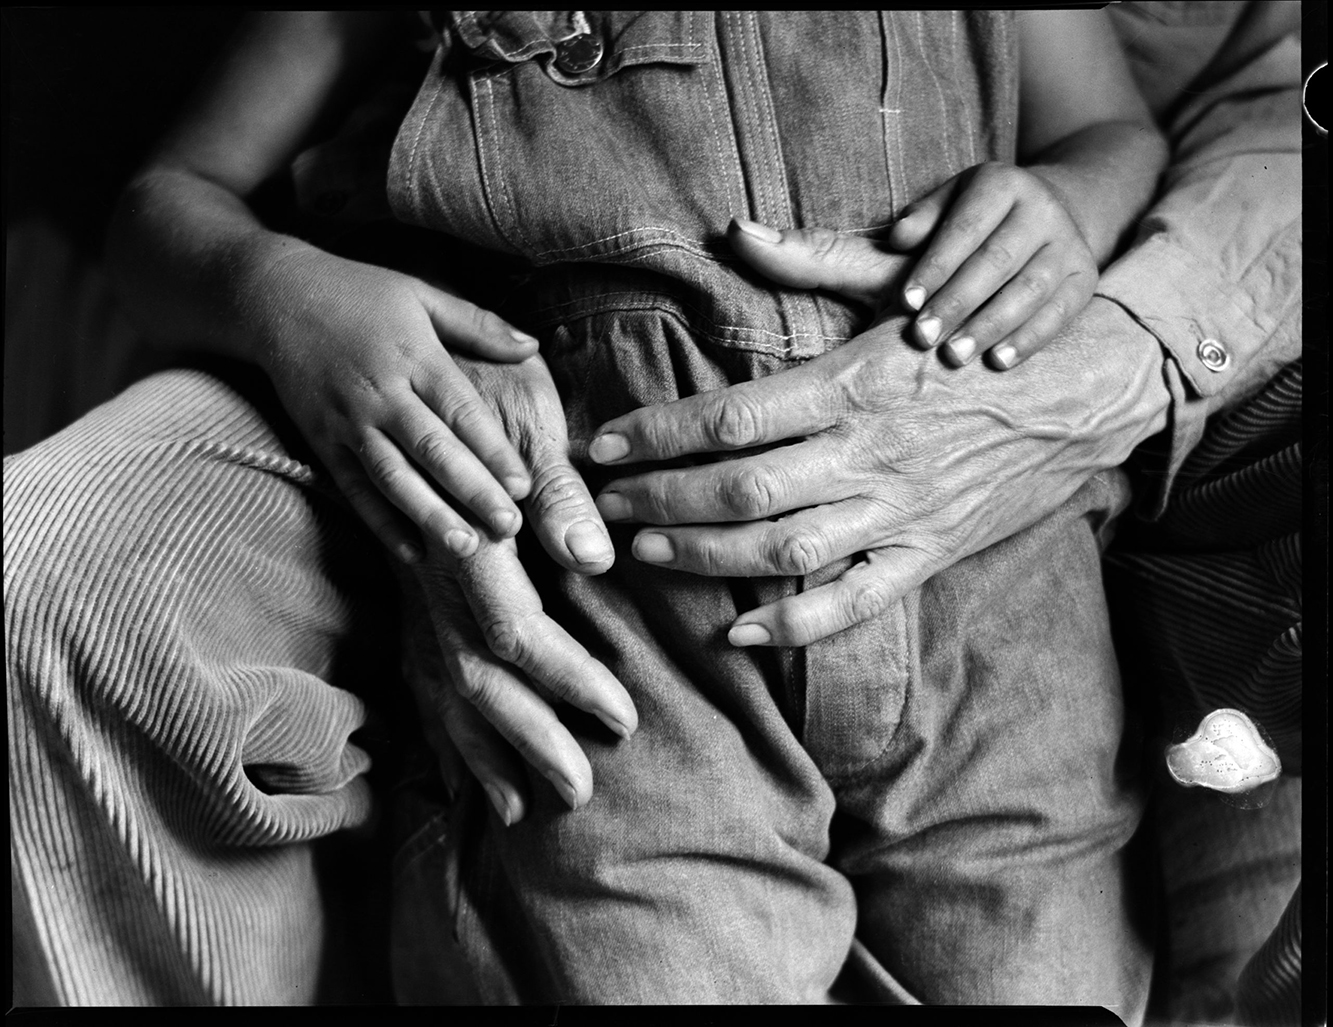 Black and white image of a grown man's hands holding a small child's hands